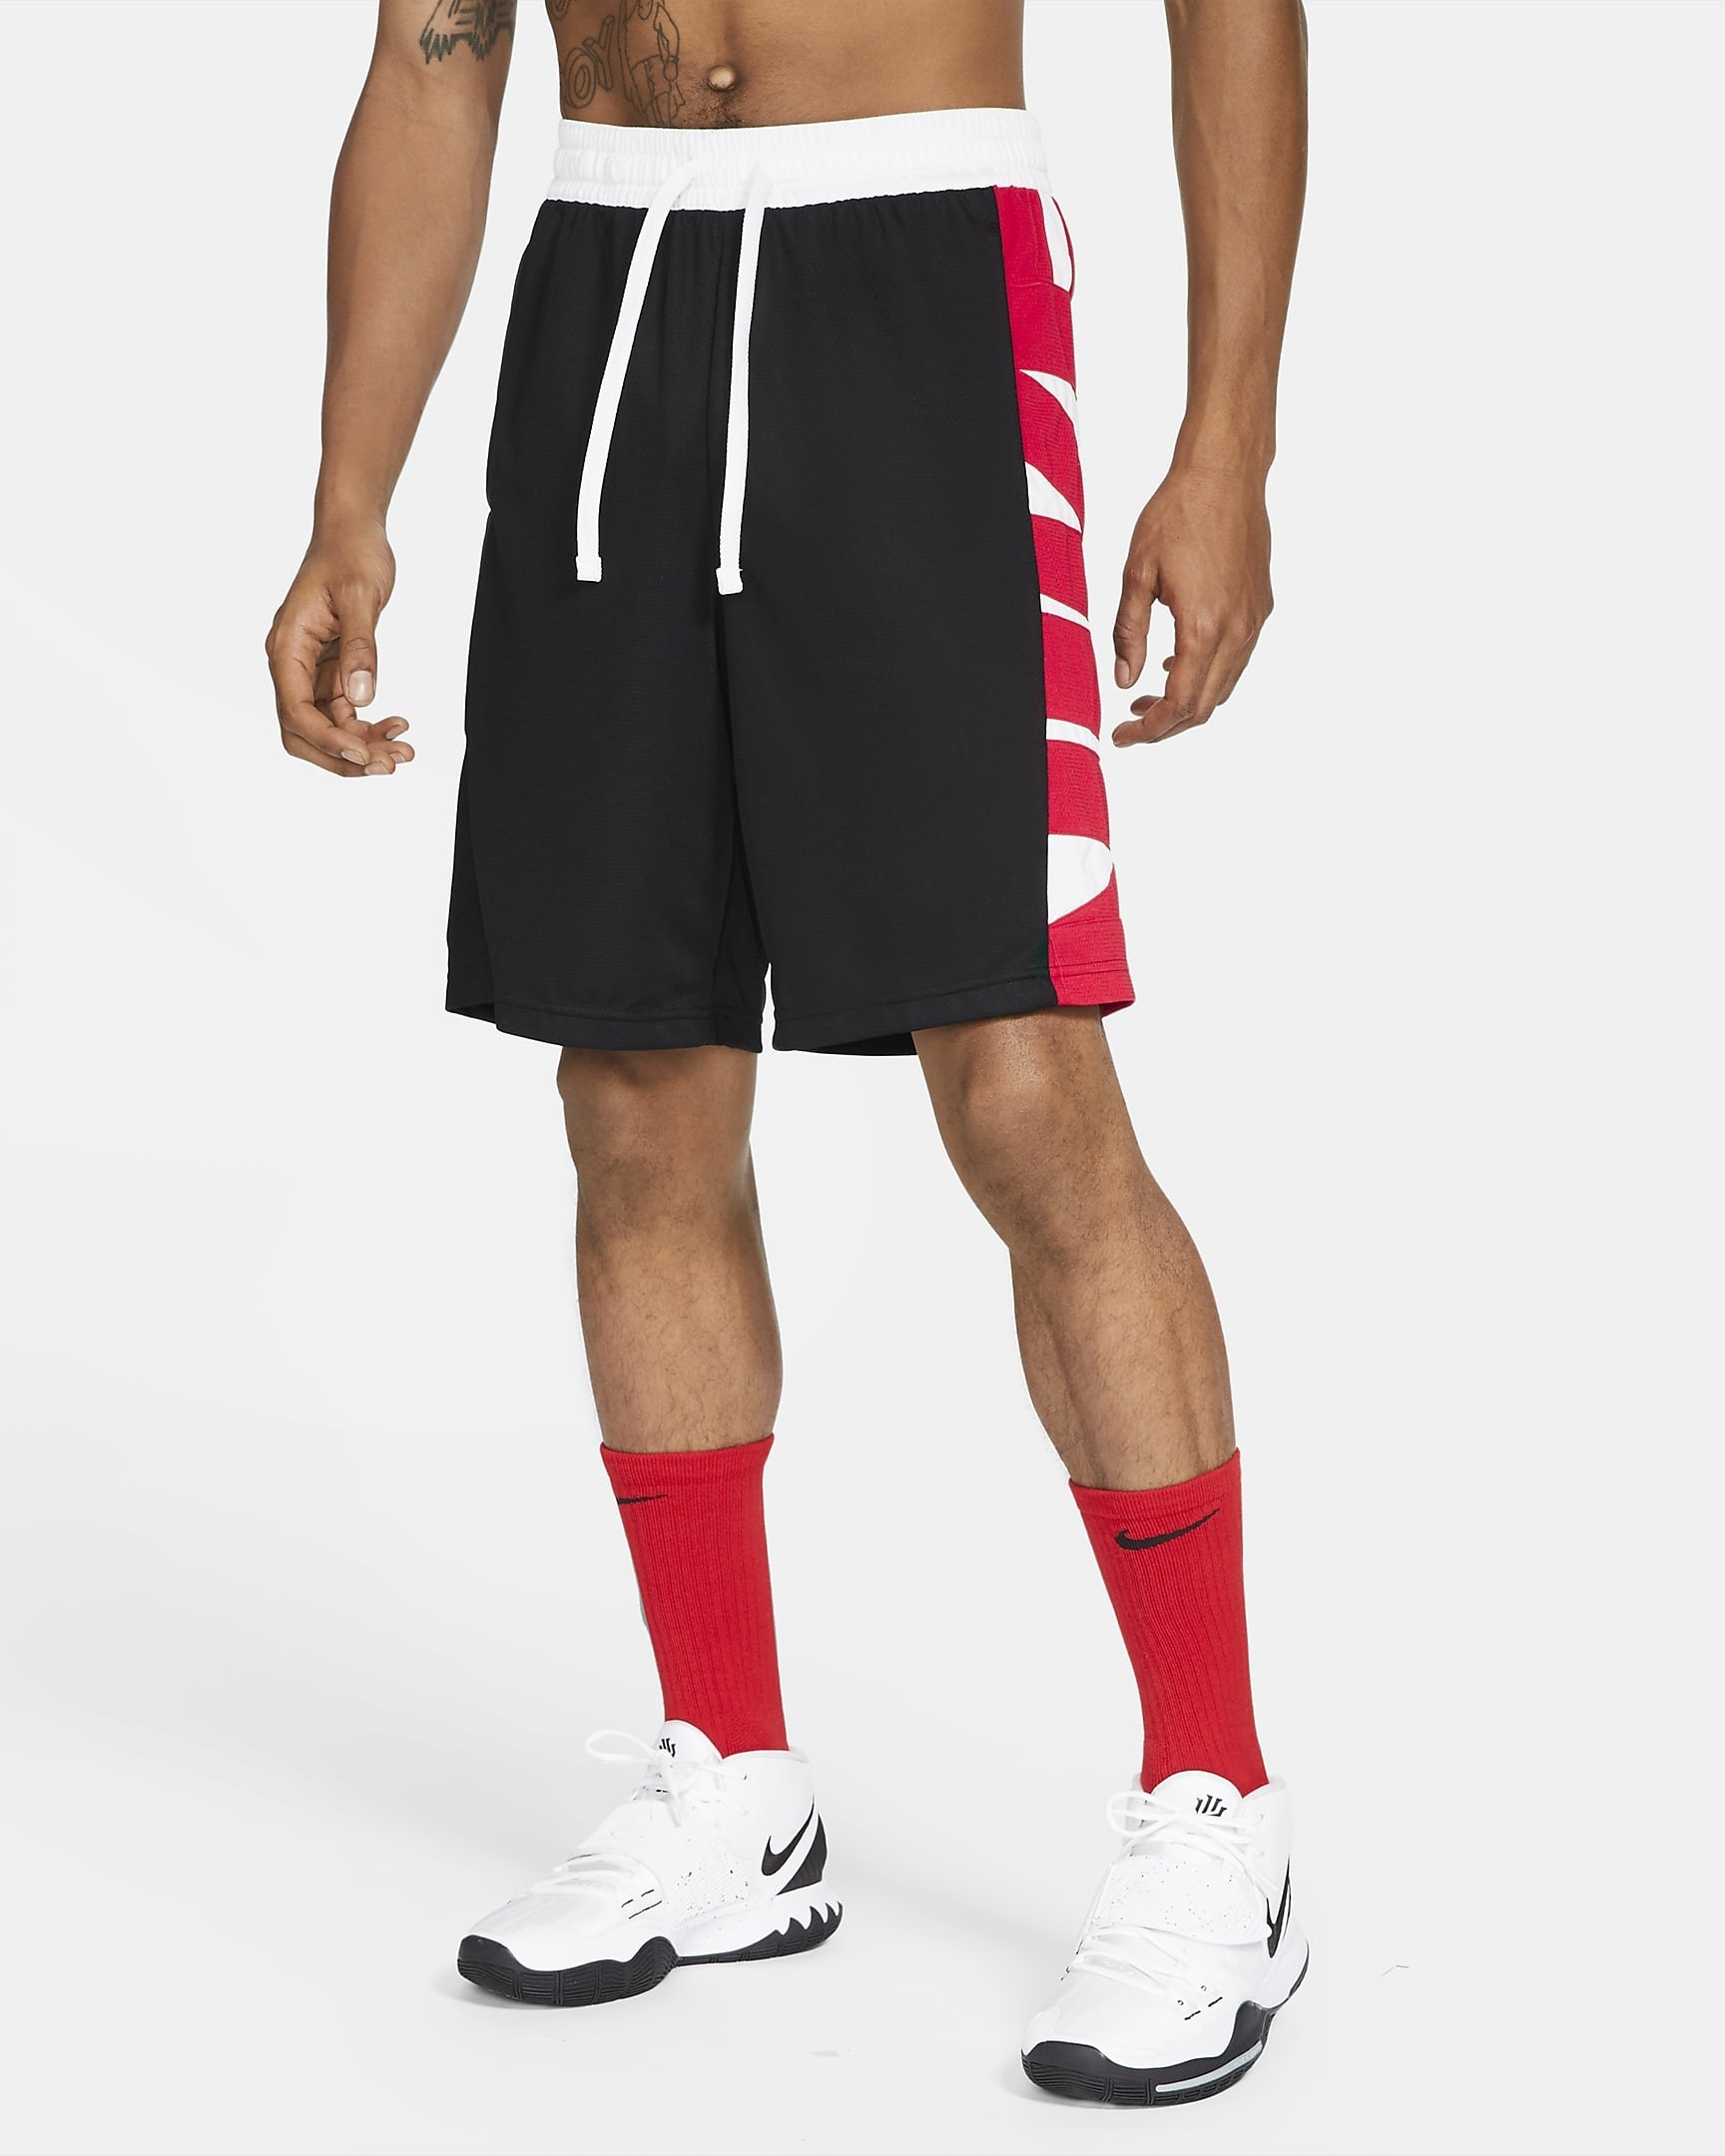 Model wearing black basketball shorts with red strip down the side with white nike logo, worn with red socks and white basketball sneakers